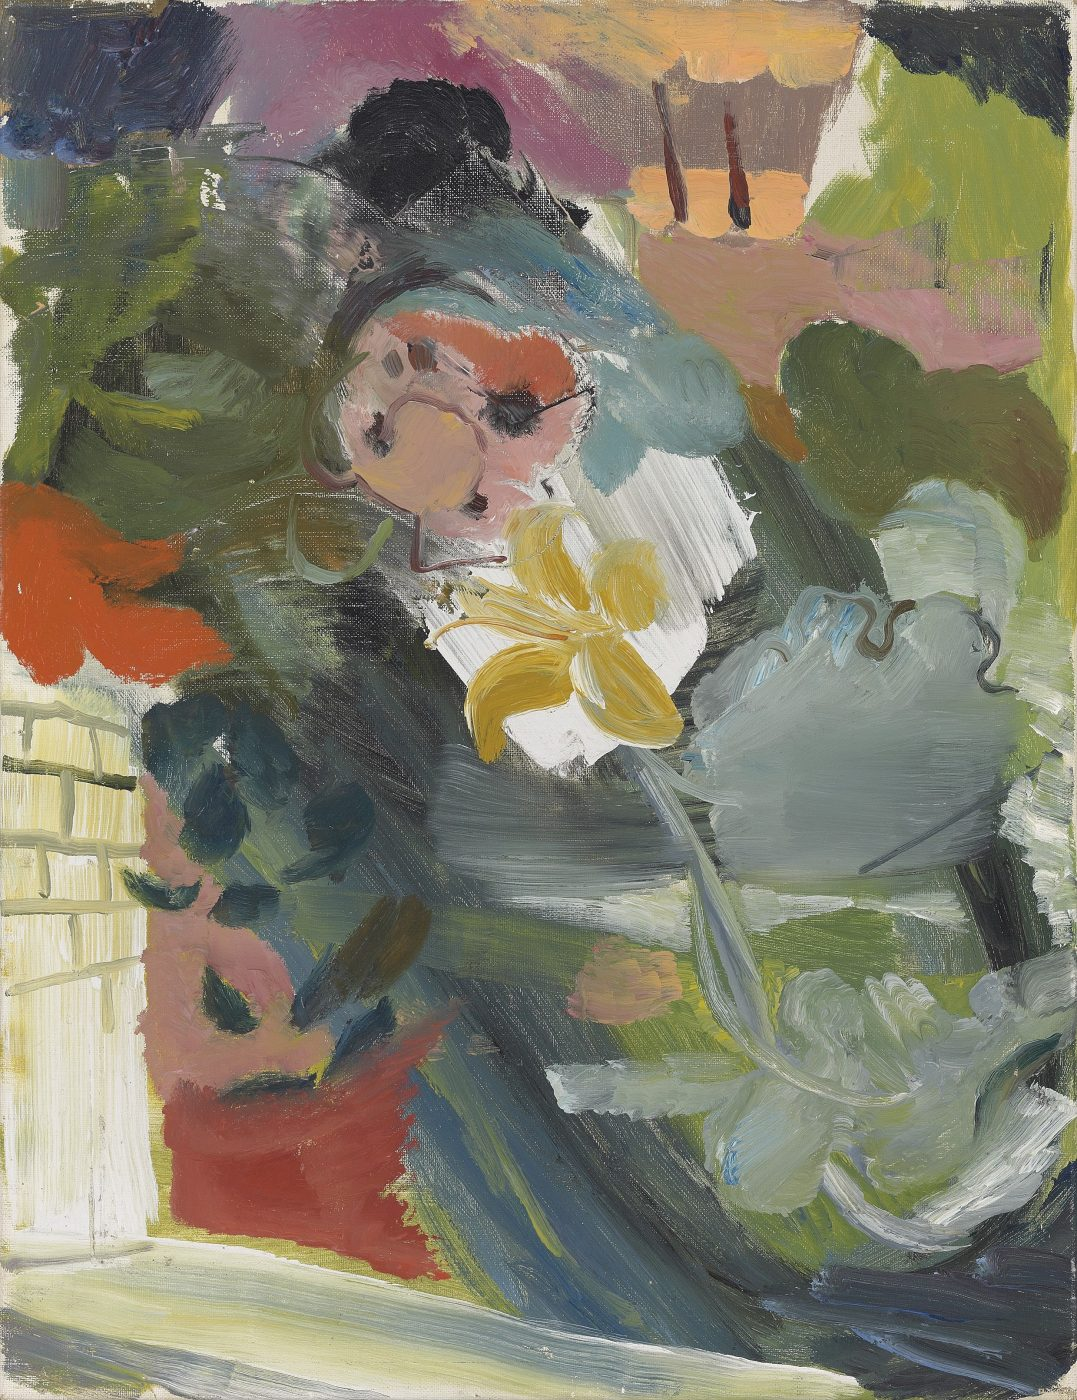 Ivon Hitchens (1893-1979), Flowers by Flagstones and Wall